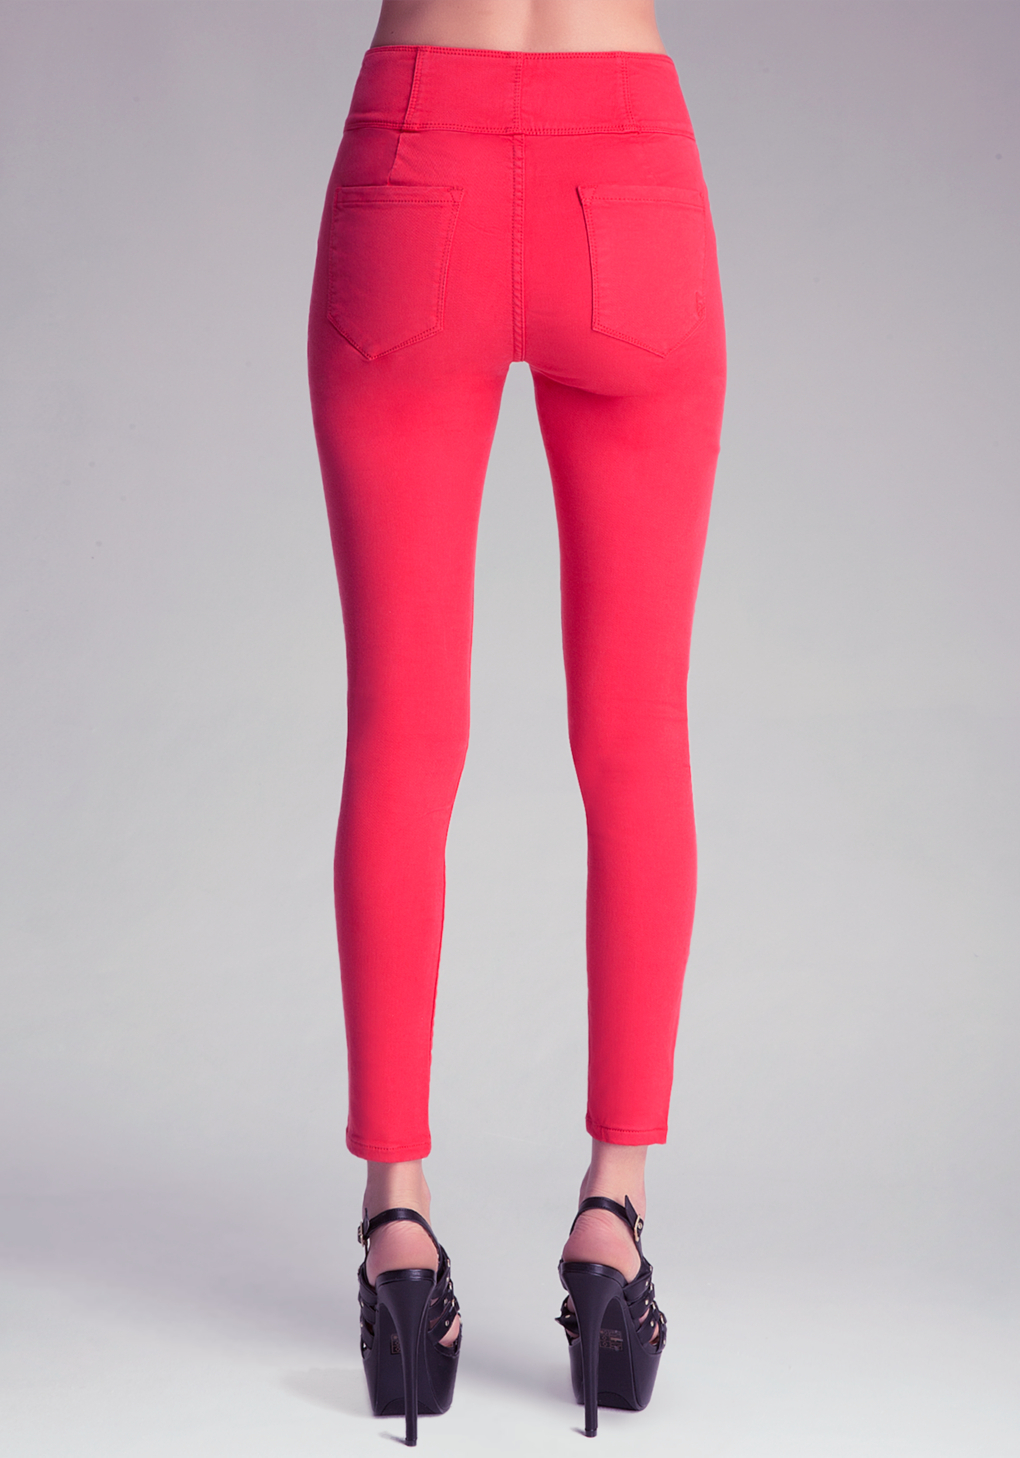 Bebe High Waist Skinny Jeans in Red | Lyst